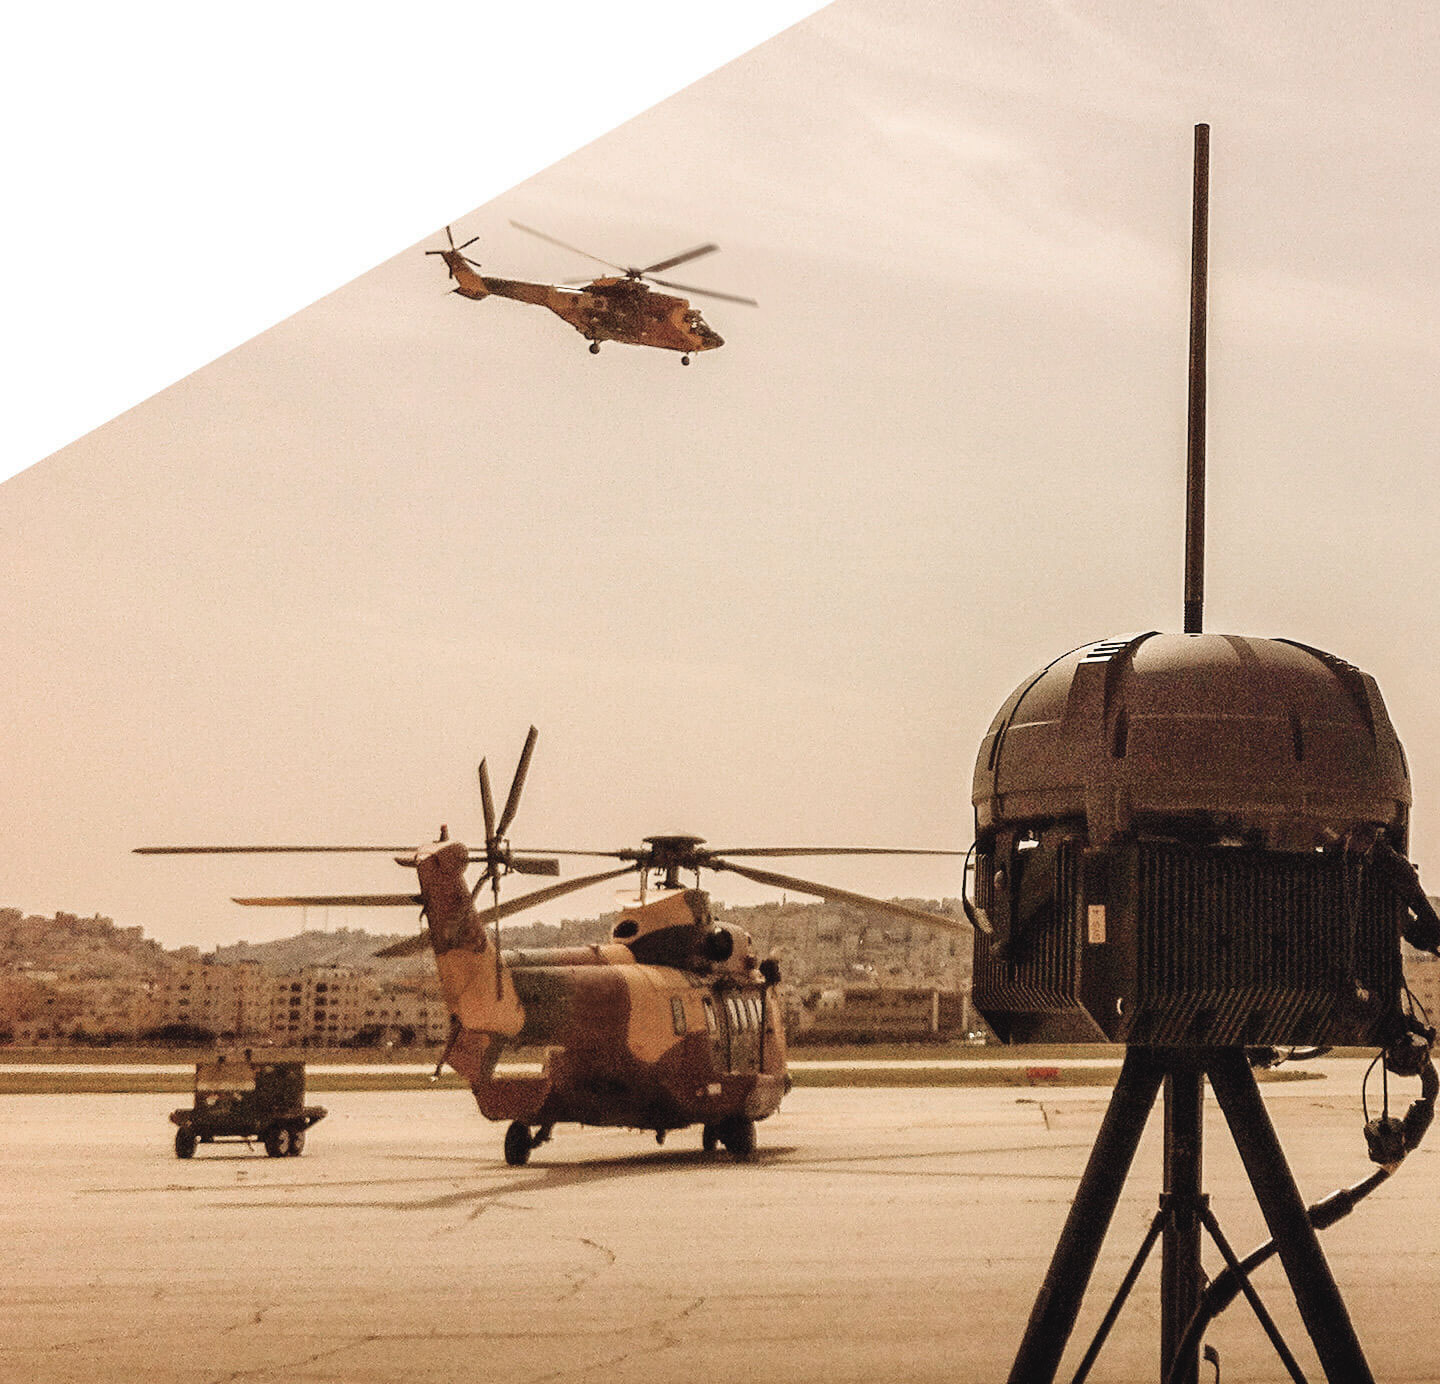 C4ISR and helicopters